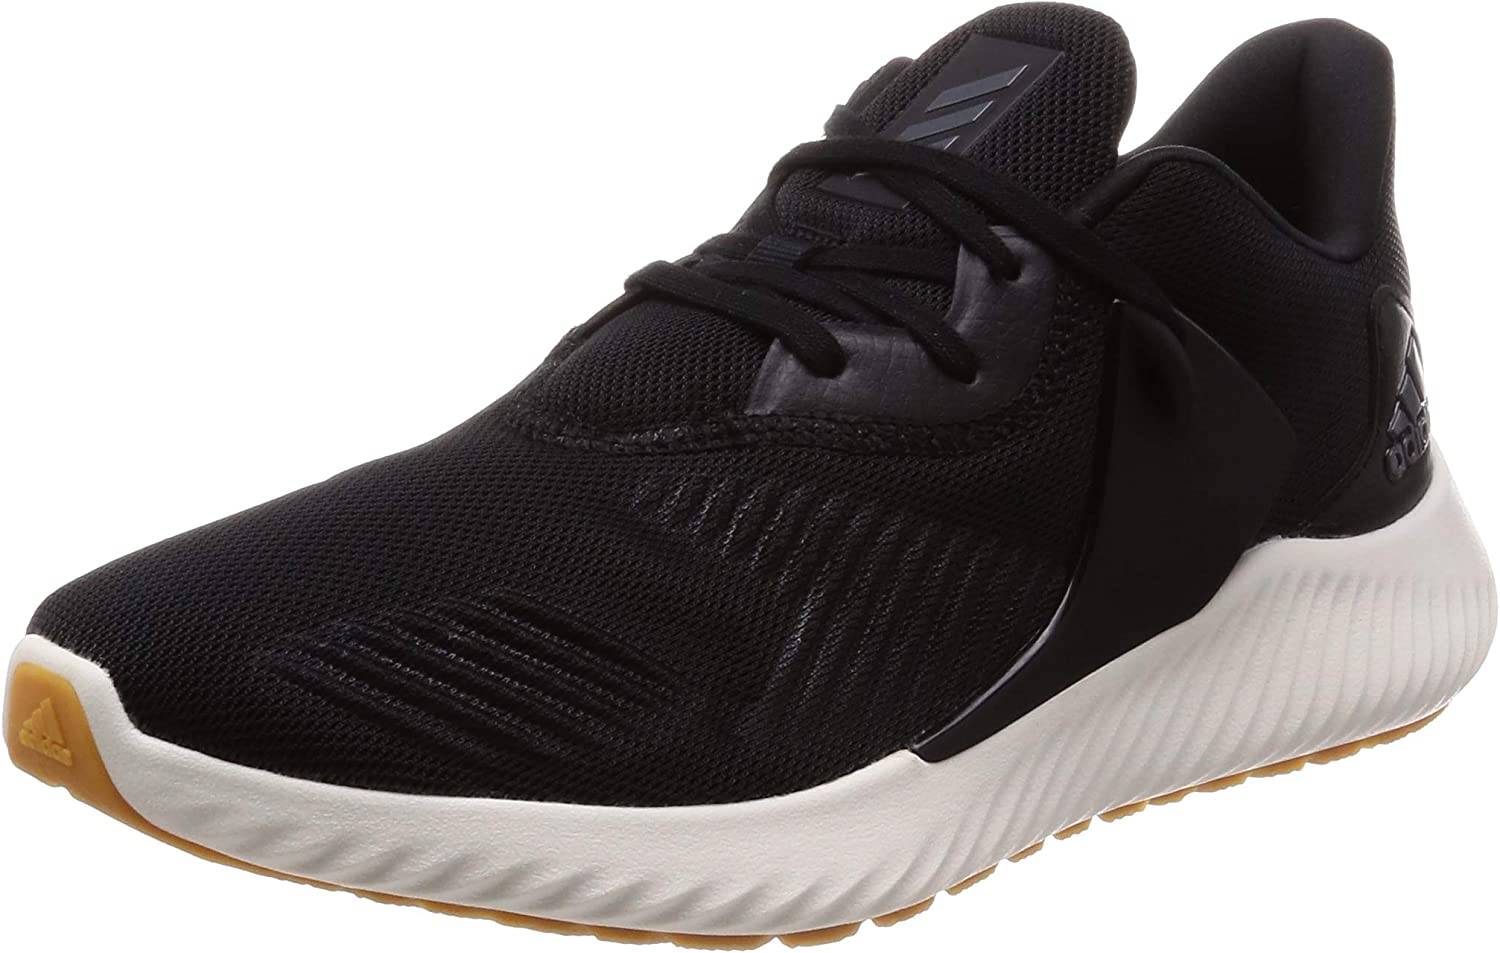 Adidas Men's Alphabounce Rc 2 M Running shoes